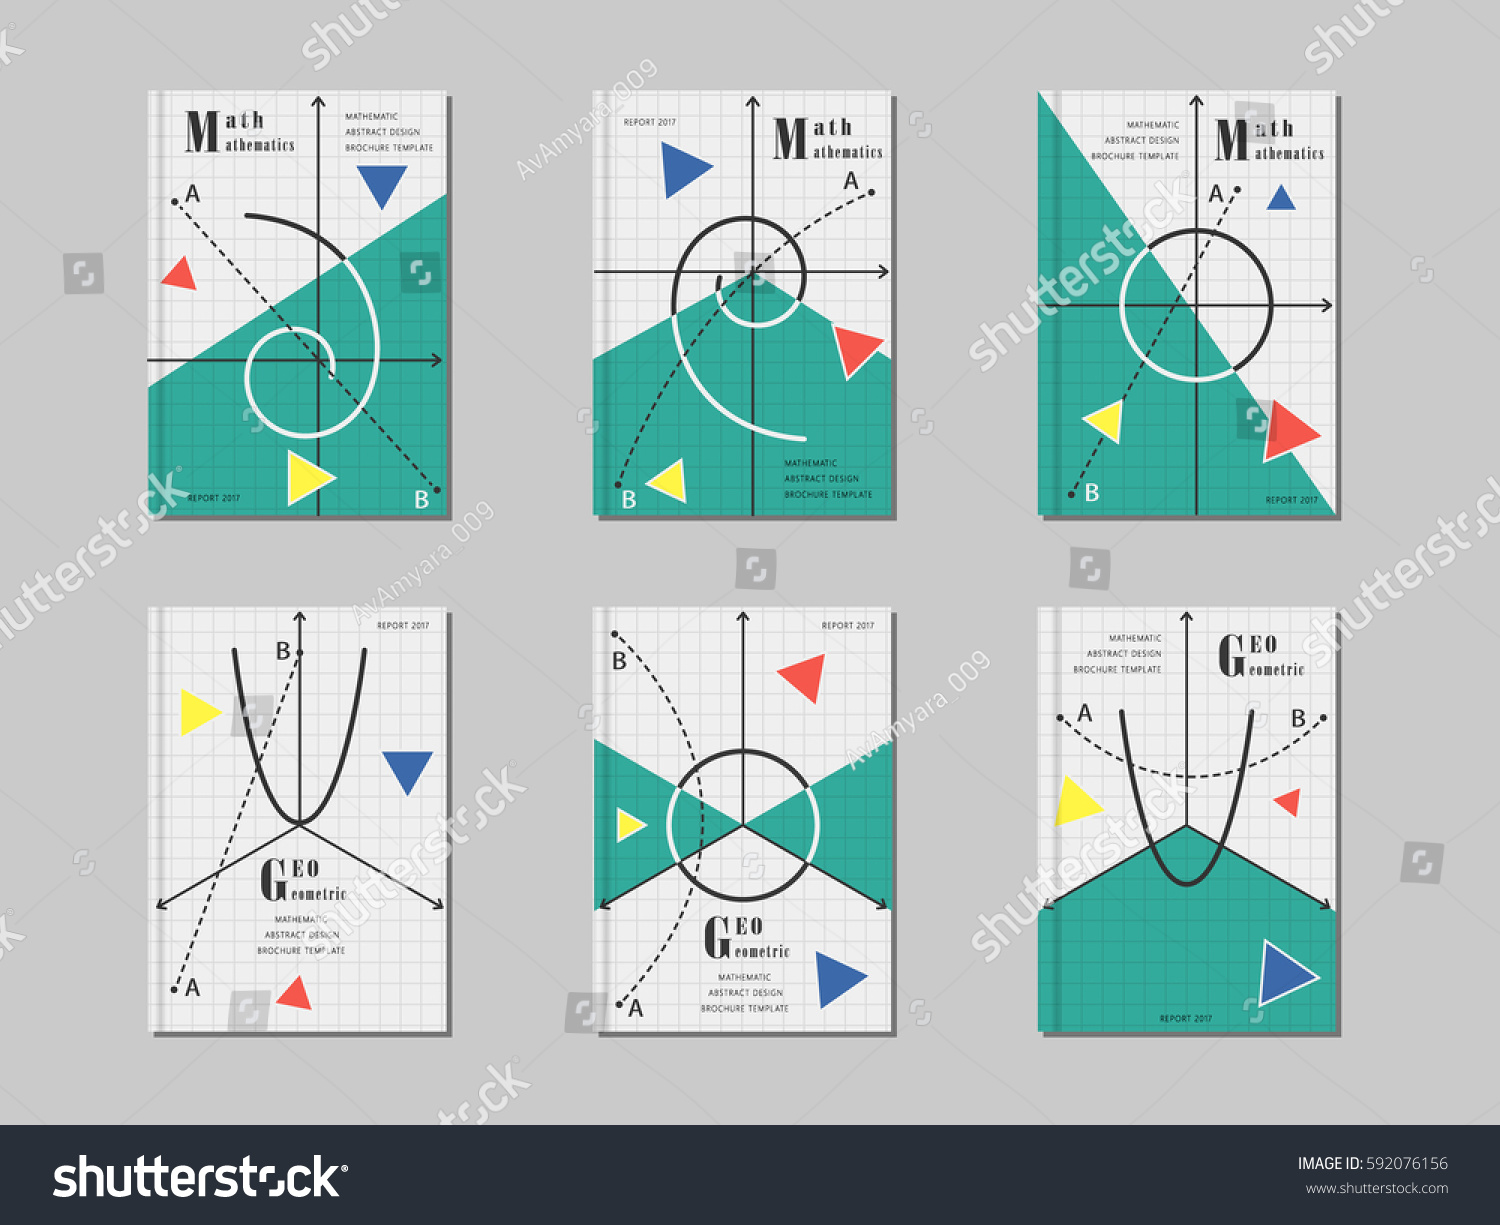 Maths Book Cover Template : Mathematics cover design abstract geometric shapes stock